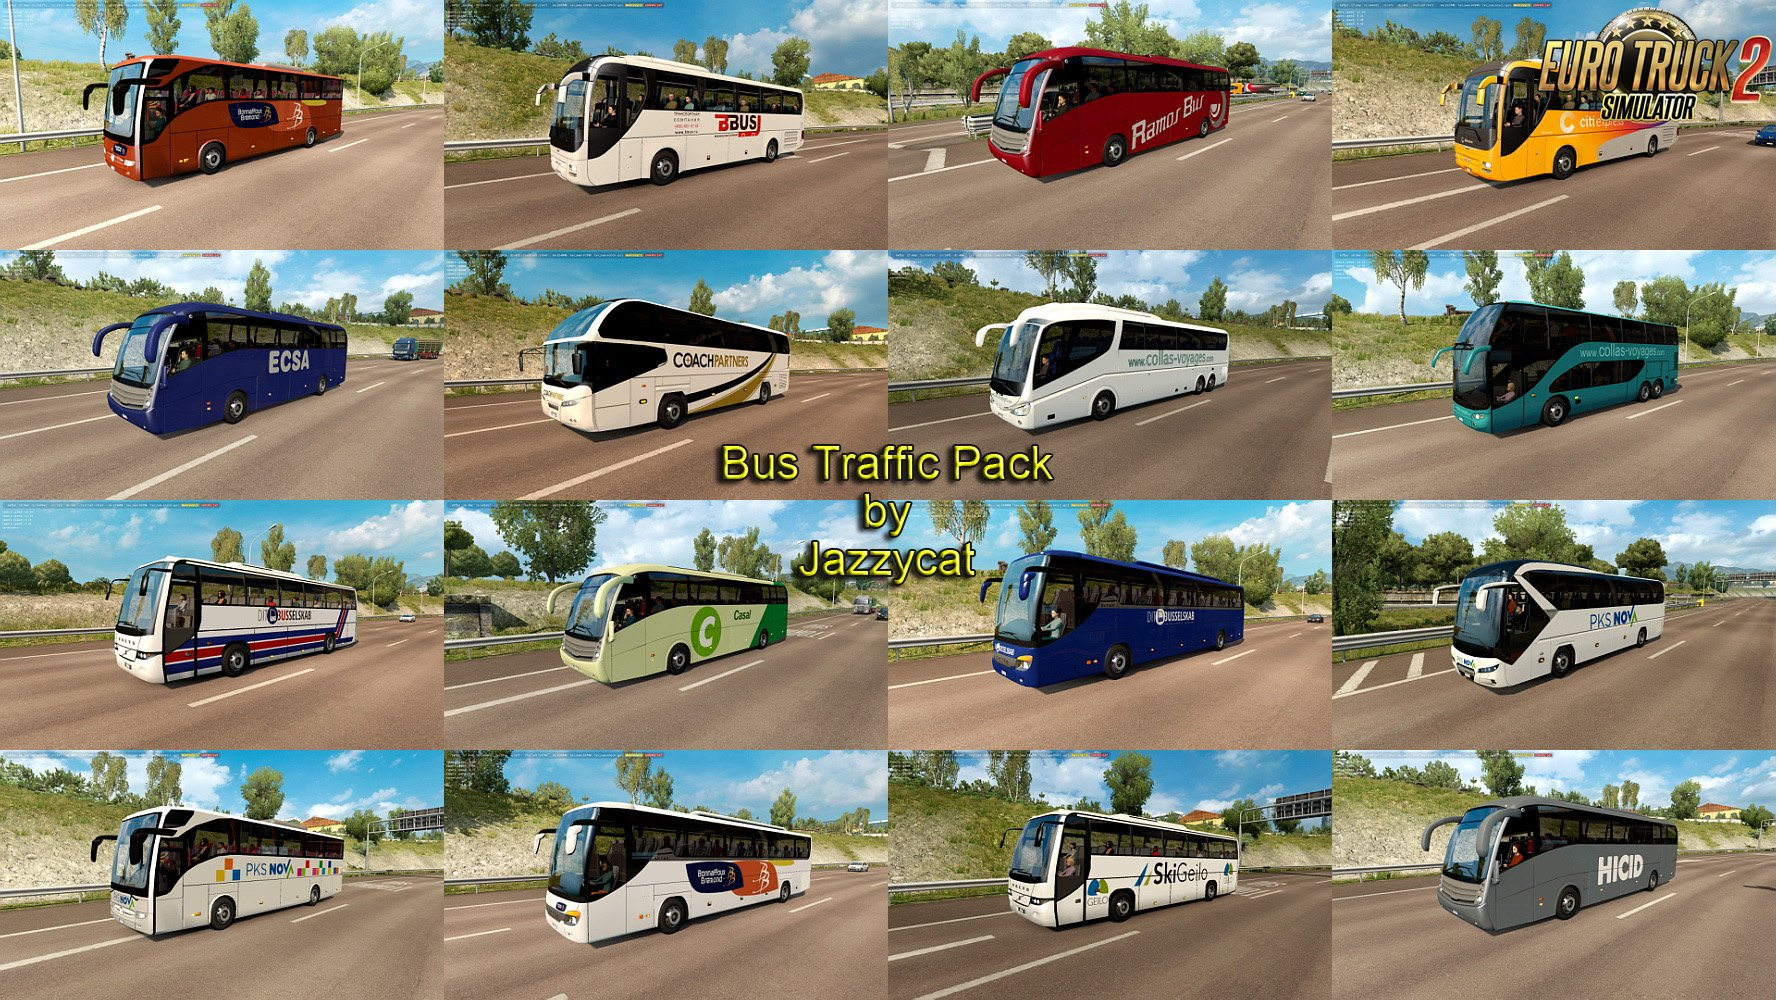 Bus Traffic Pack v4.2 by Jazzycat